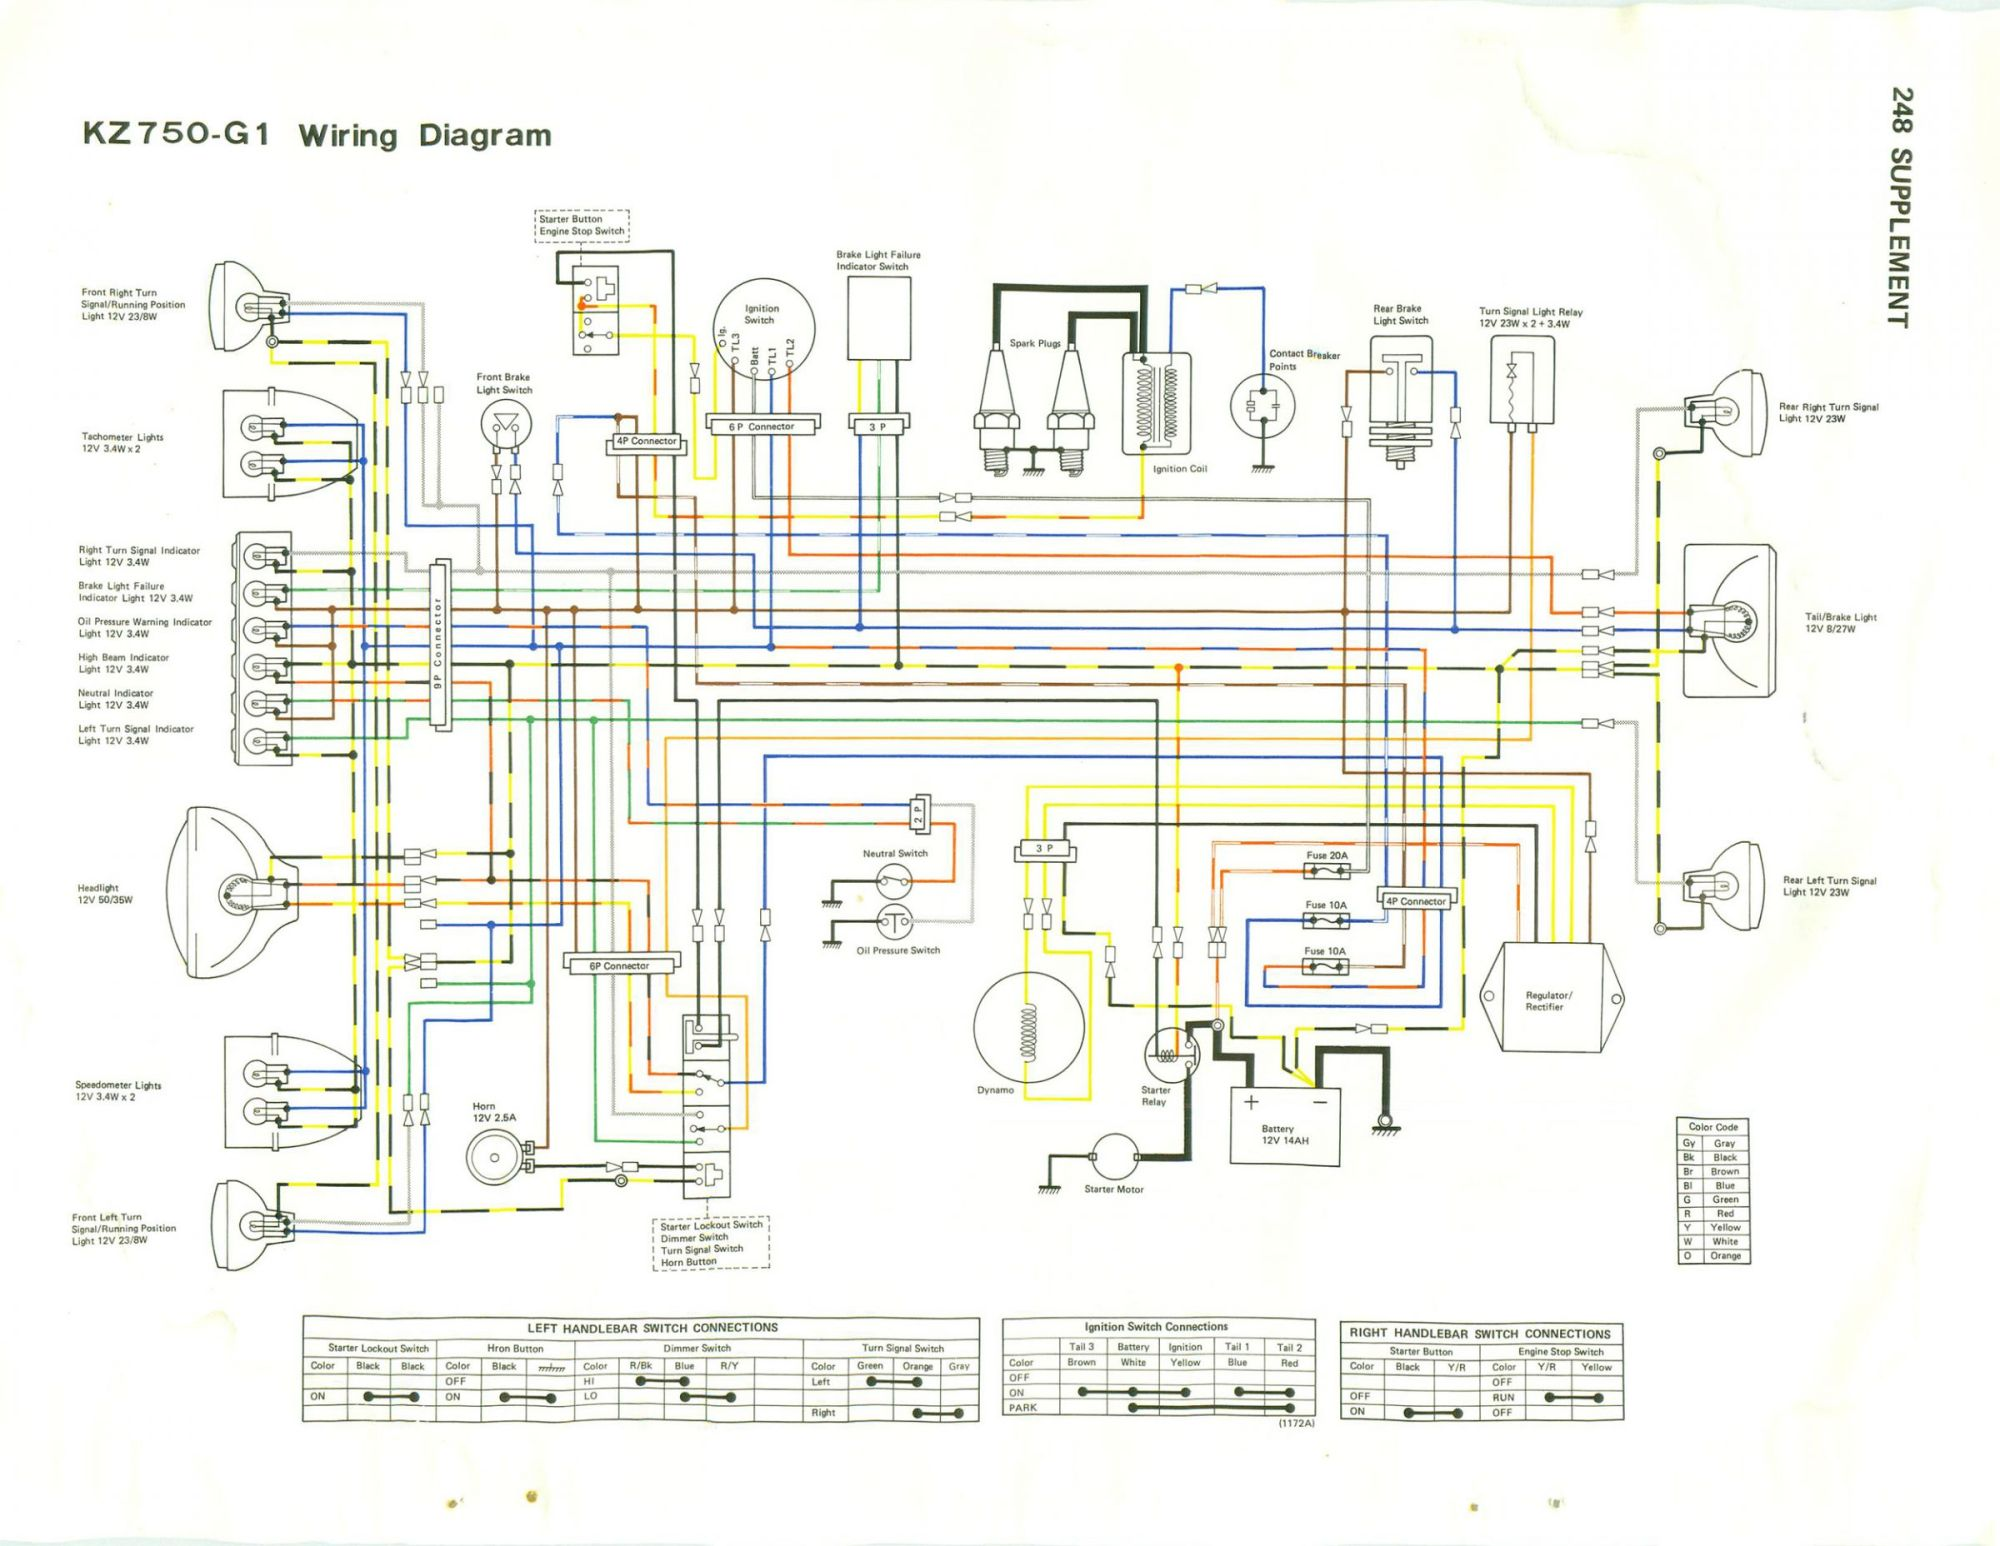 hight resolution of wiring diagram for 1983 gpz 750 1996 jeep cherokee ac kawasaki cdi wiring schematics kawasaki bayou